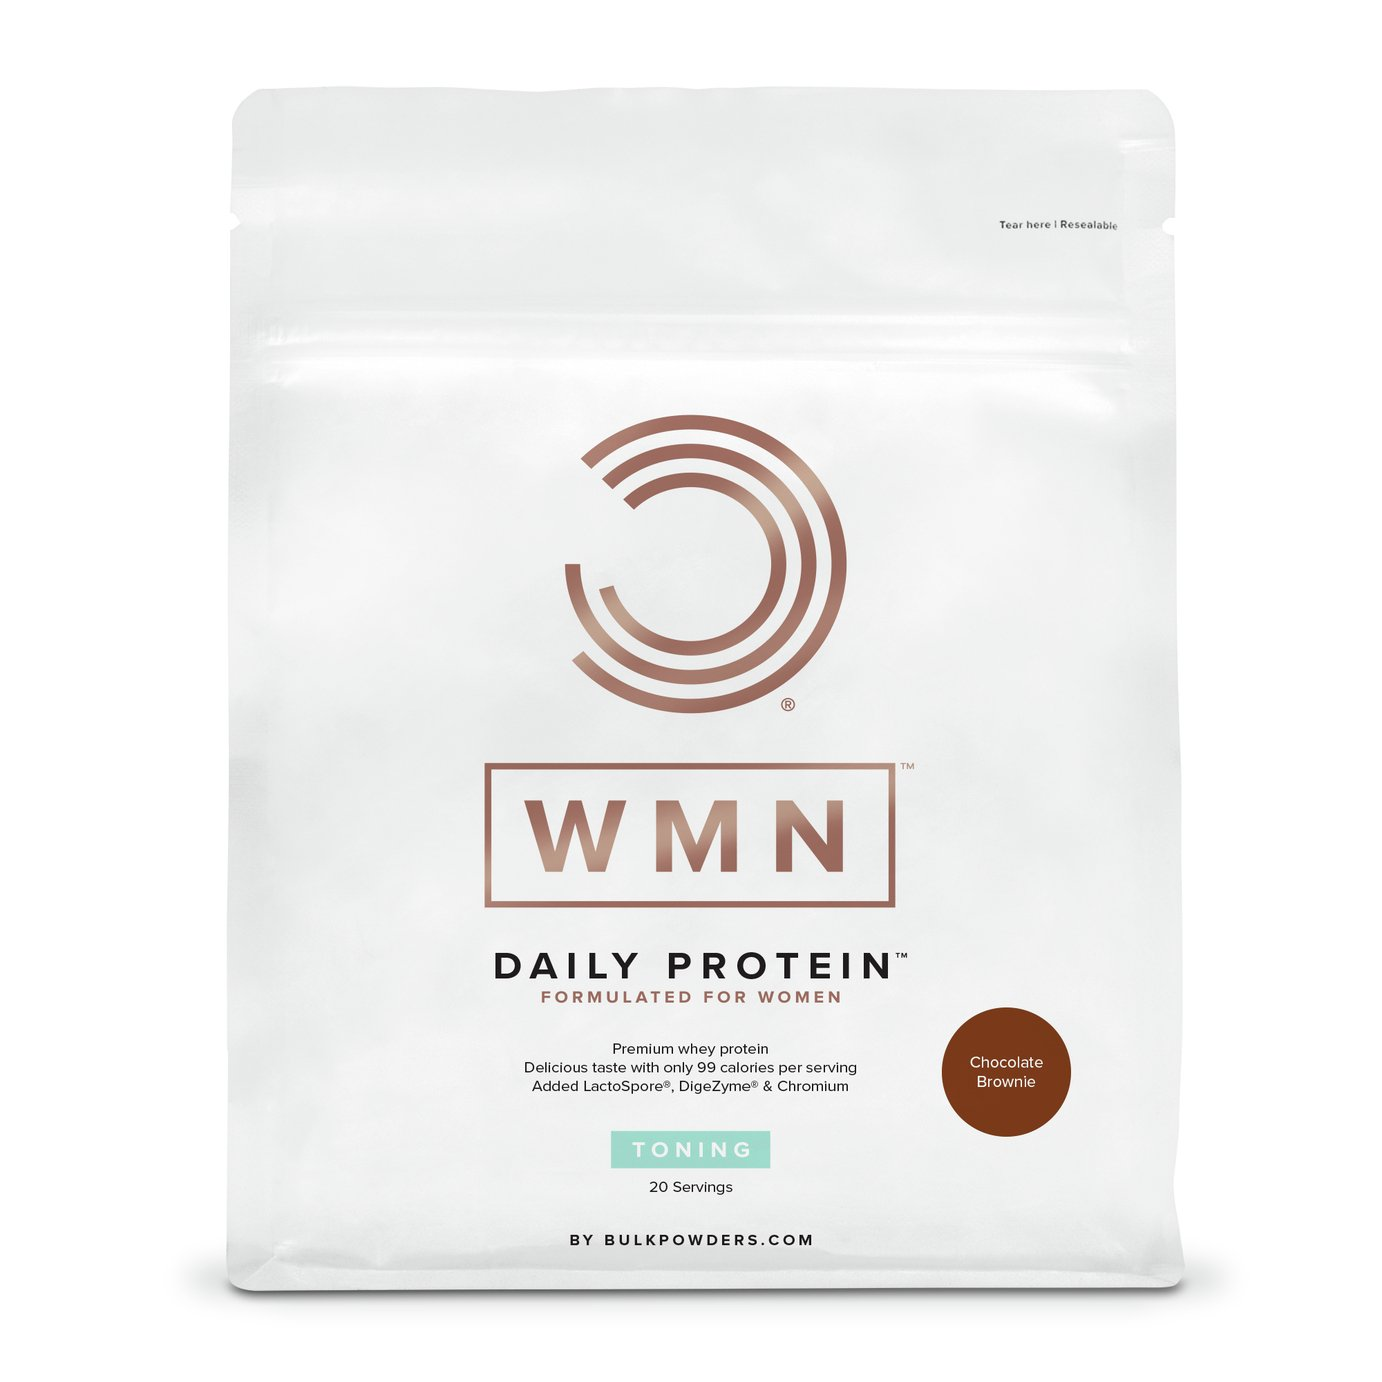 WMN Daily Protein